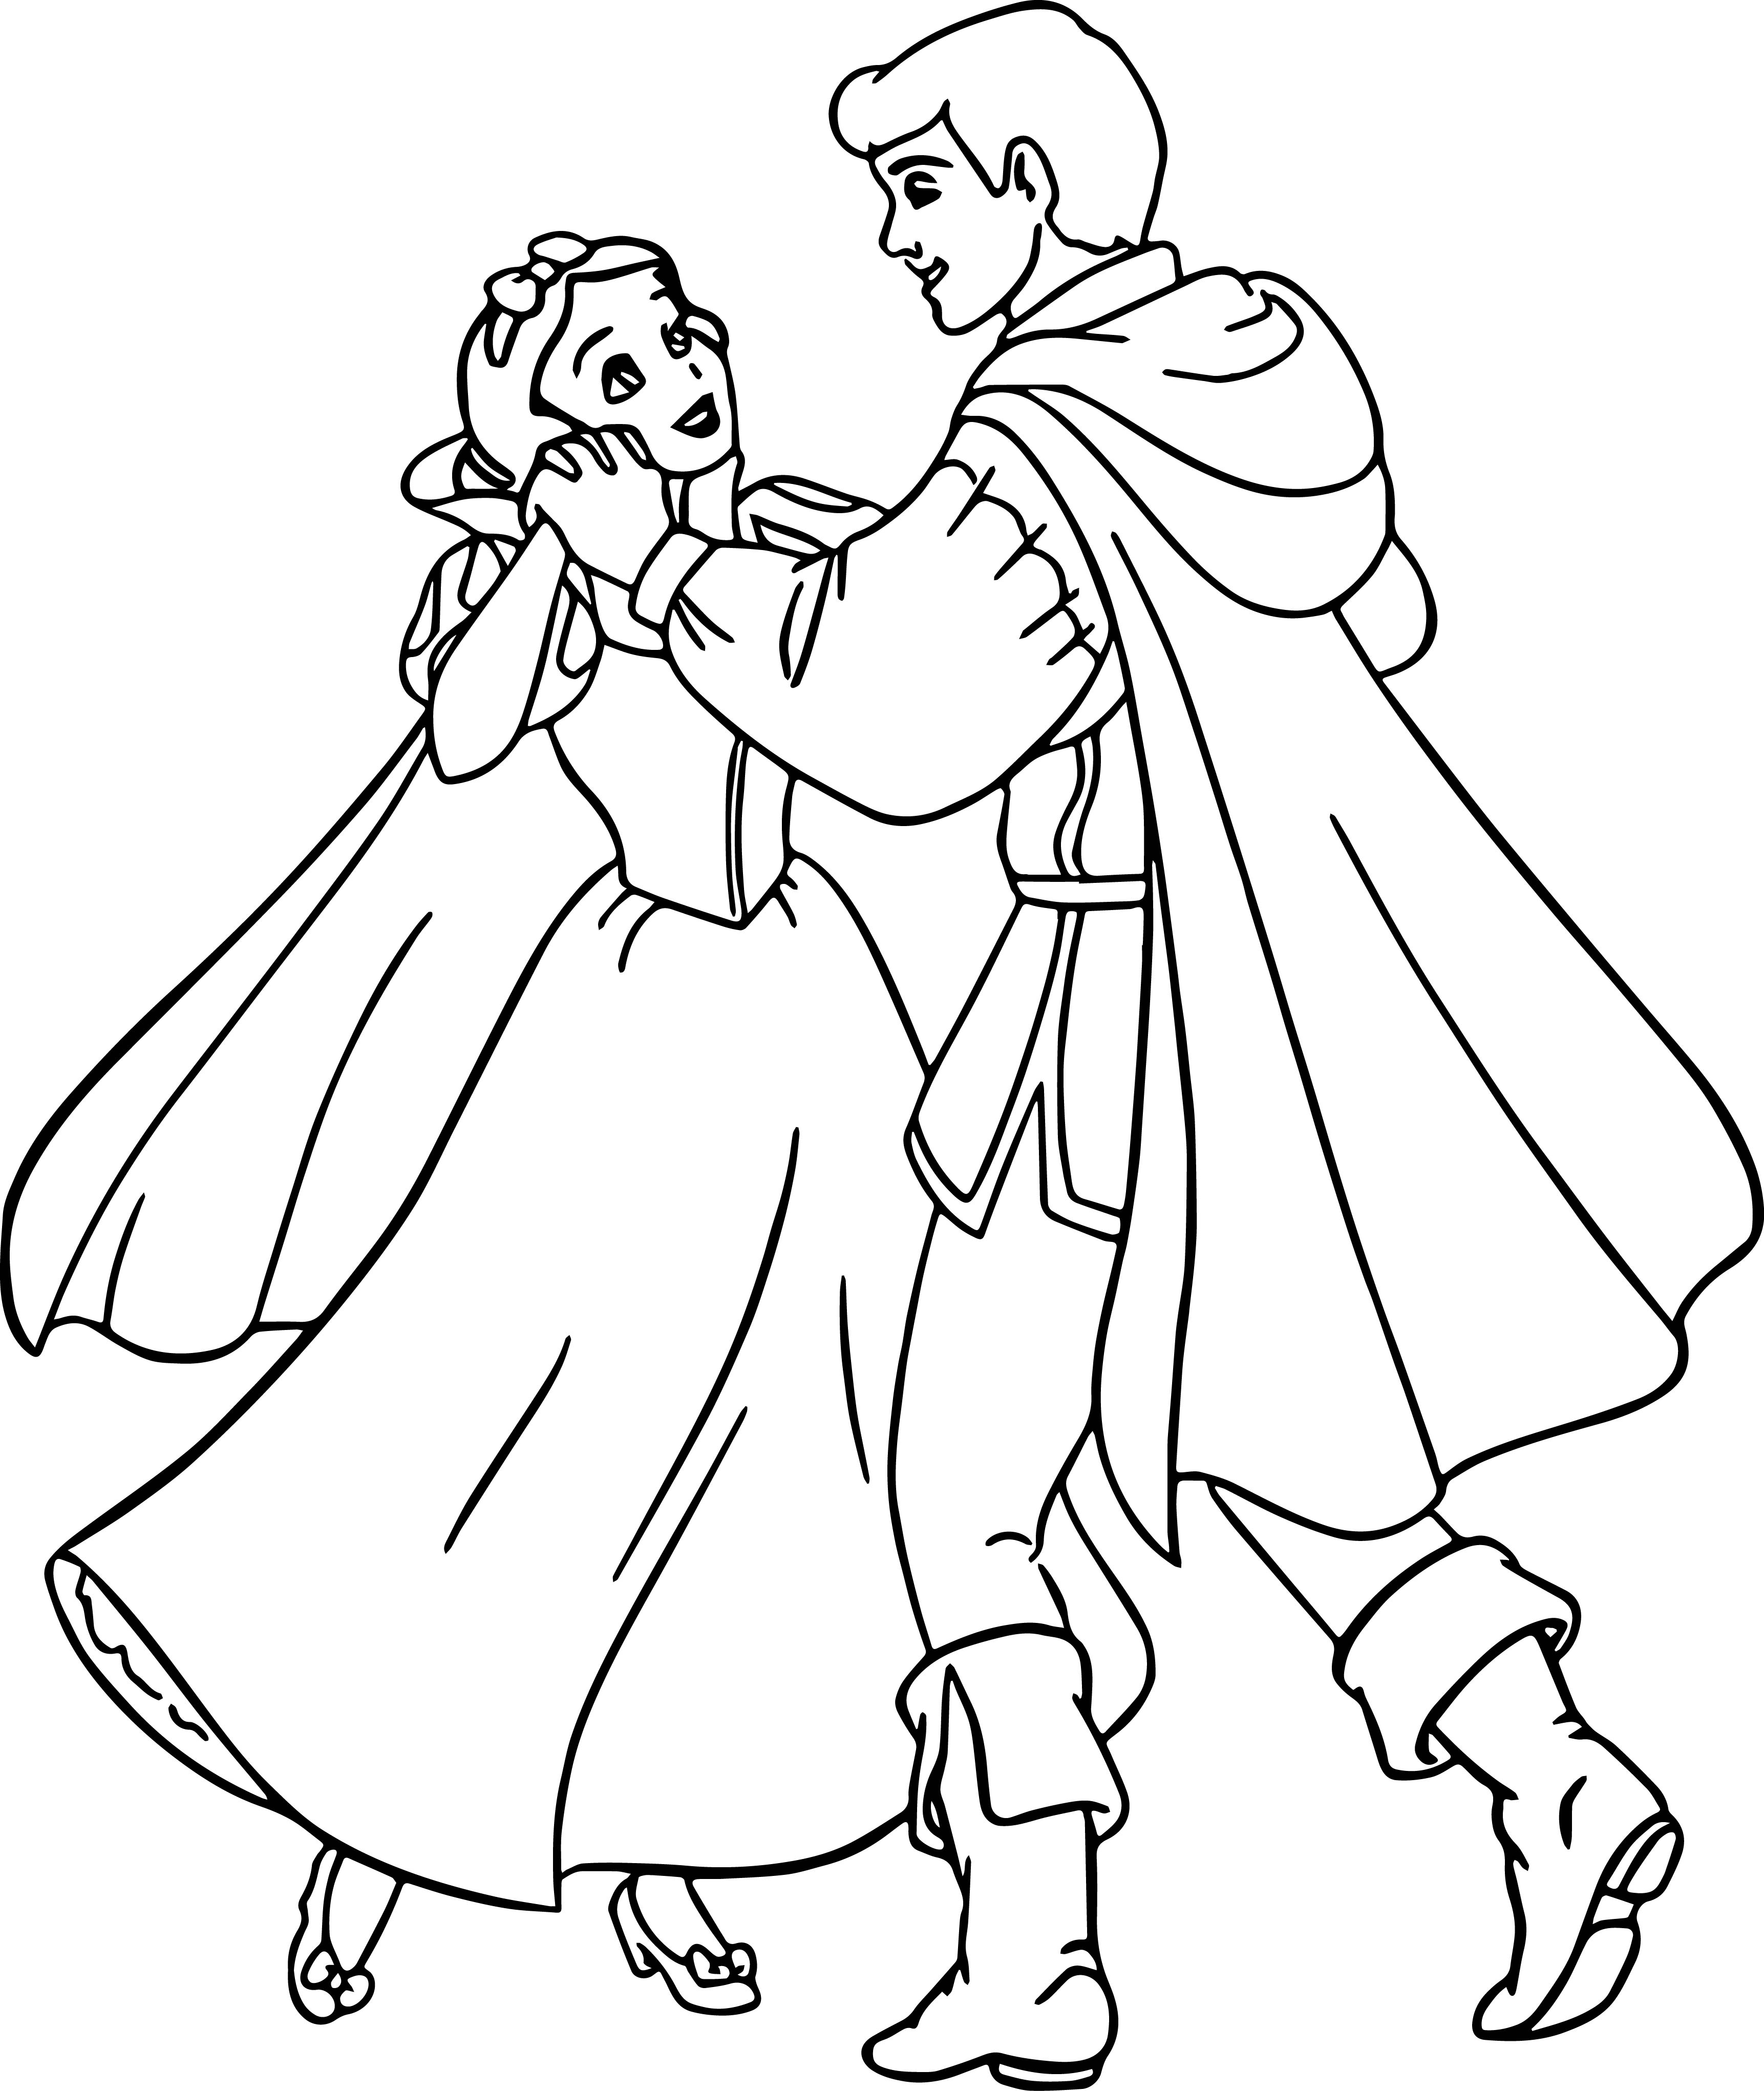 3445x4083 Snow White Coloring Pages